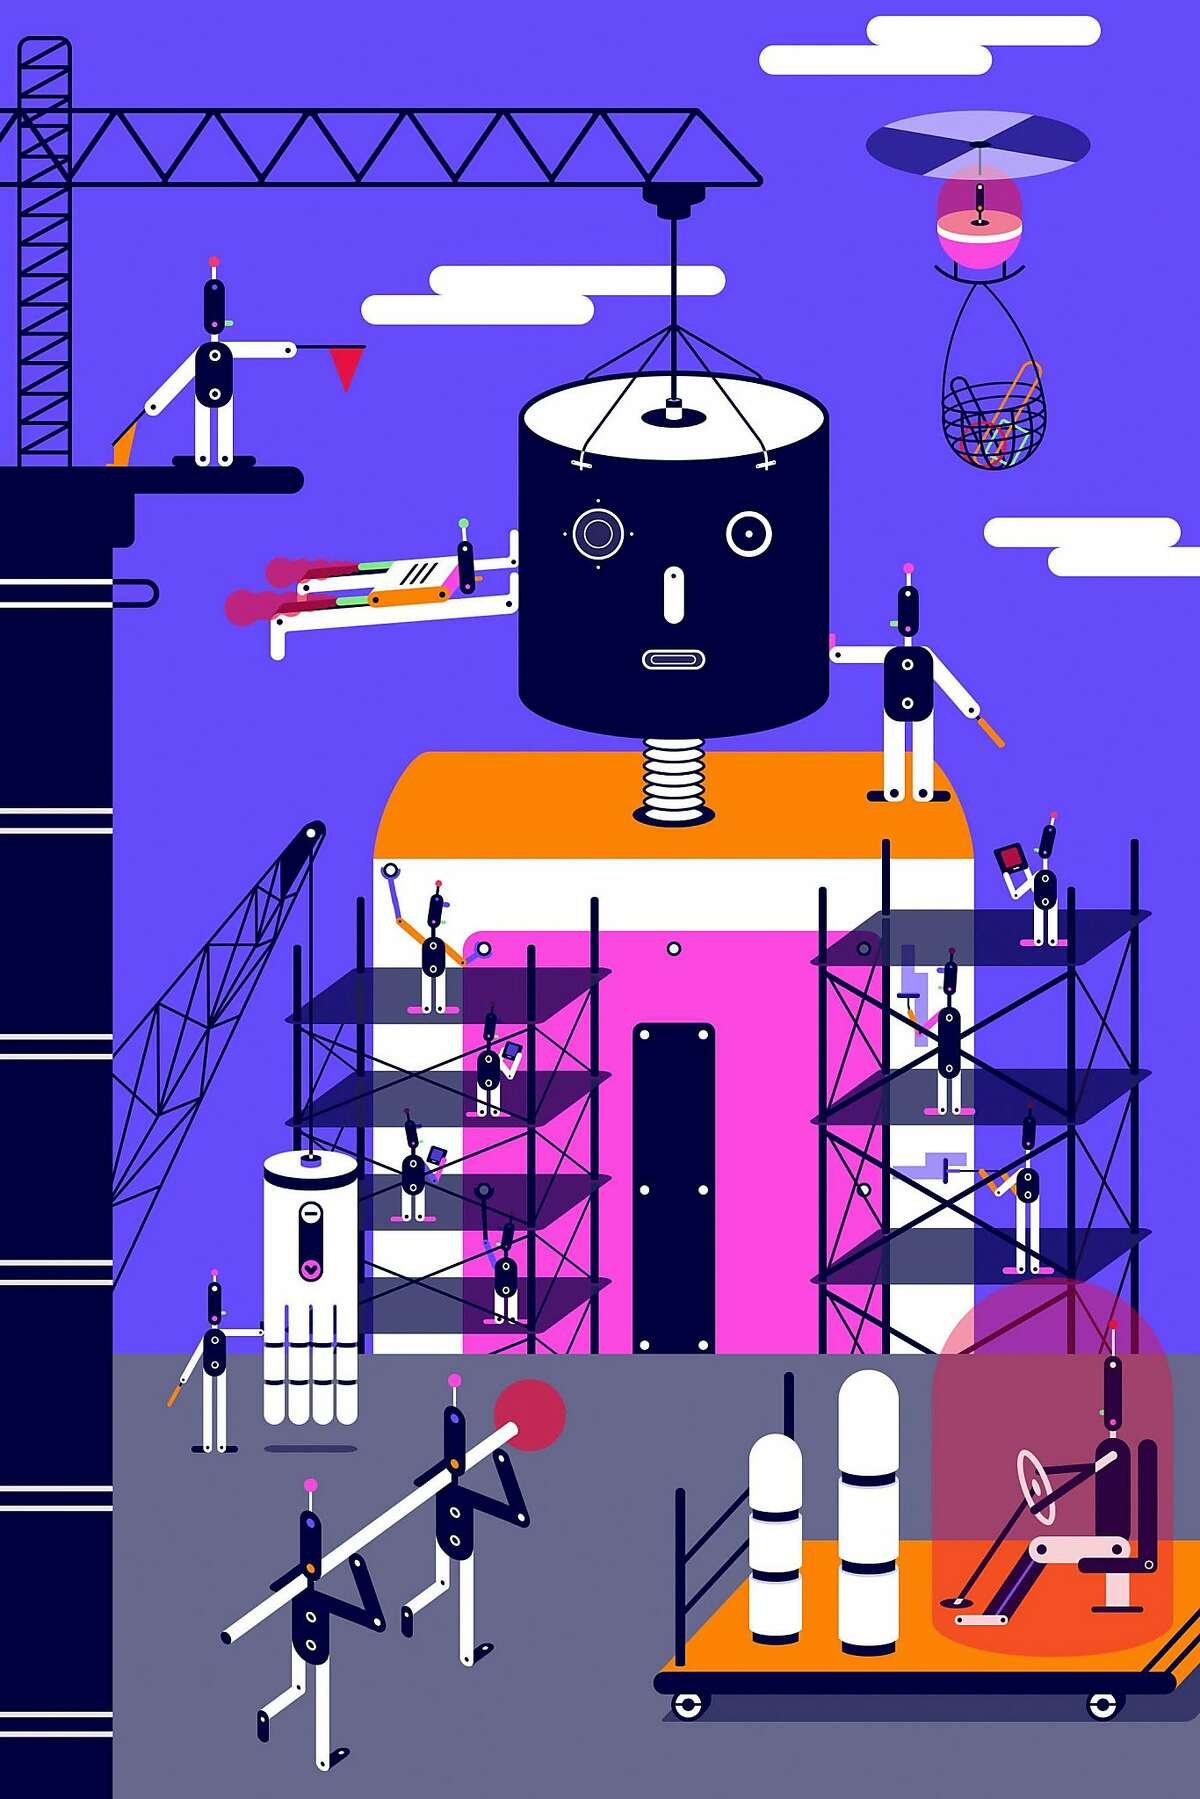 Google and others, fighting for a small pool of researchers, are looking for automated ways to deal with a shortage of artificial intelligence experts. (Mengxin Li/The New York Times) -- NO SALES; FOR EDITORIAL USE ONLY WITH AI TECH BY CADE METZ FOR NOV. 6, 2017. ALL OTHER USE PROHIBITED. --